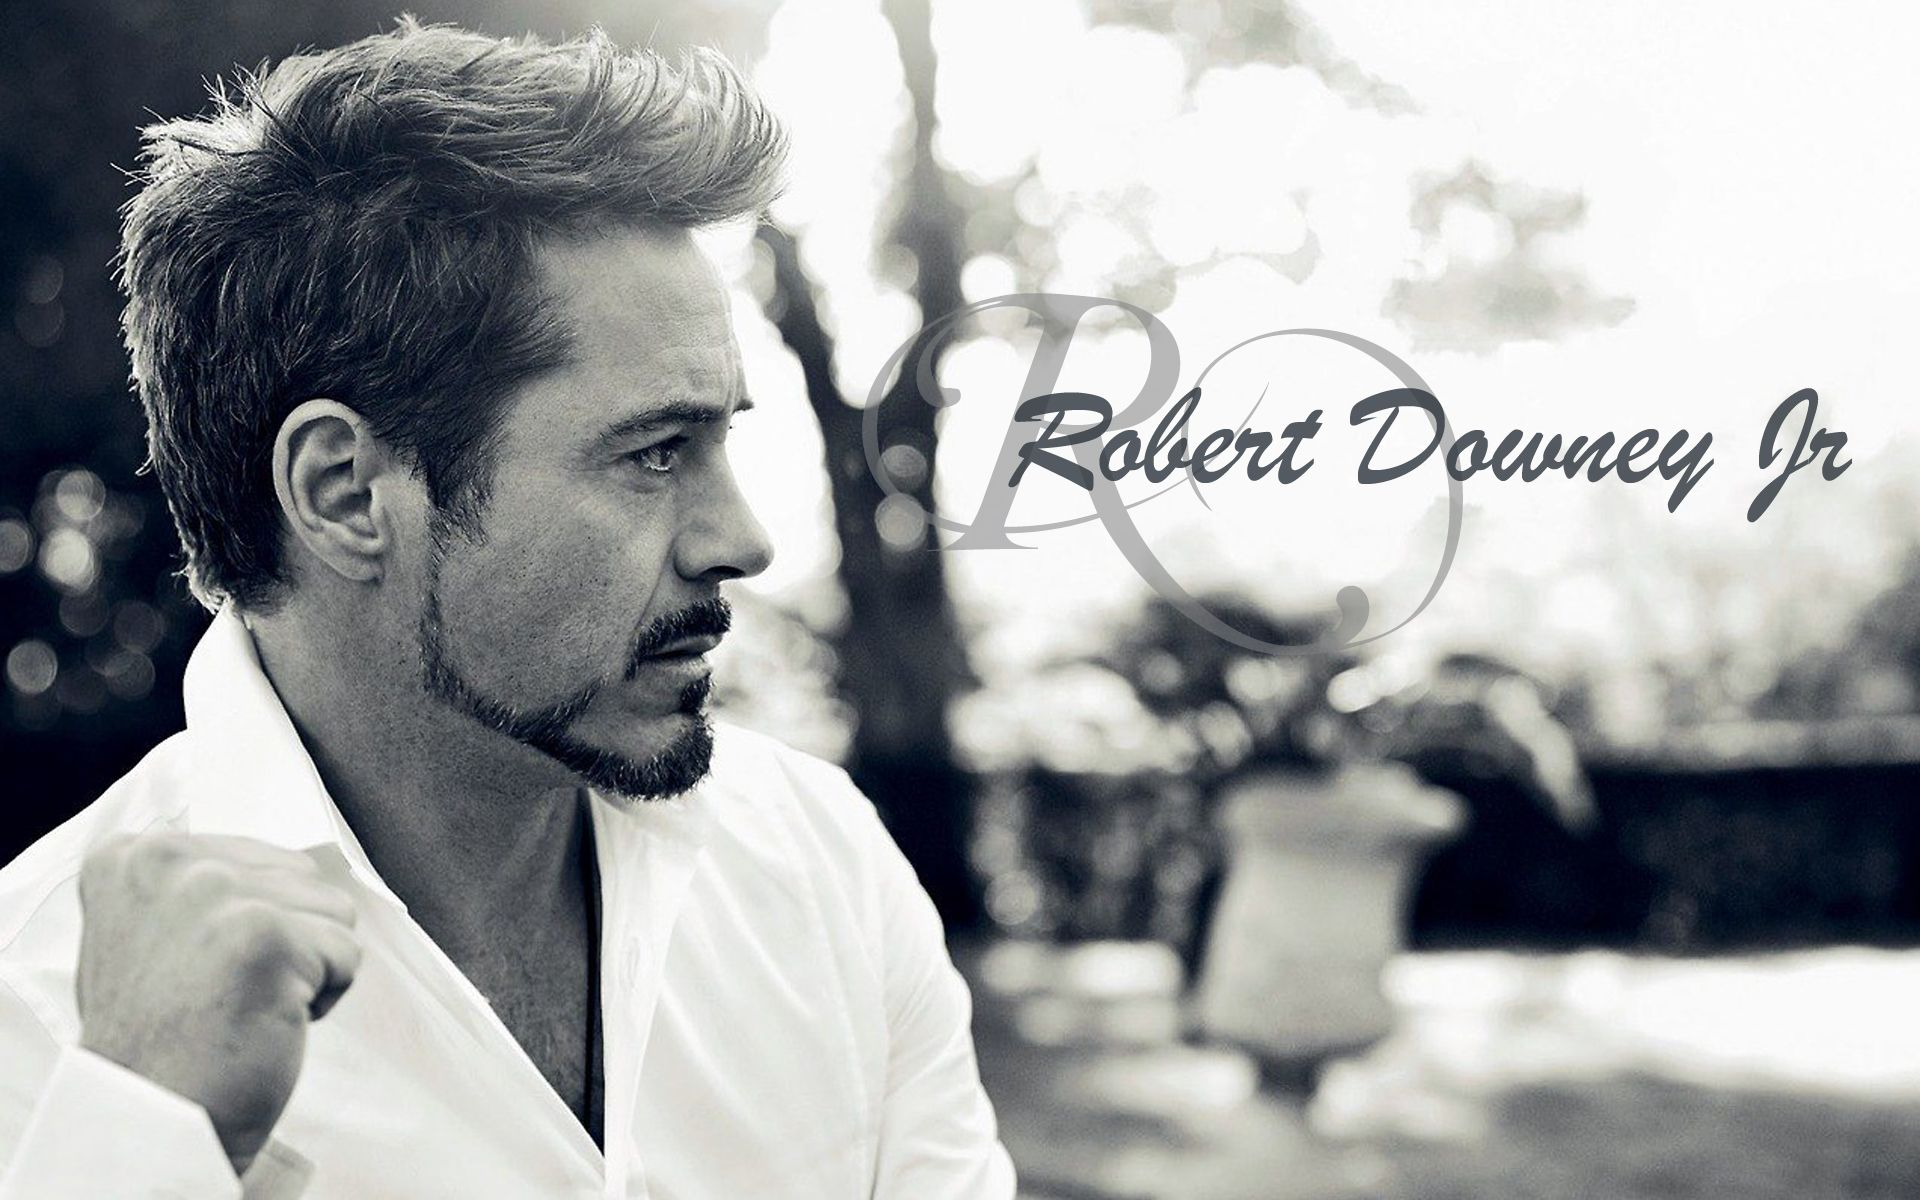 Robert downey jr hd images get free top quality robert downey jr hd images for